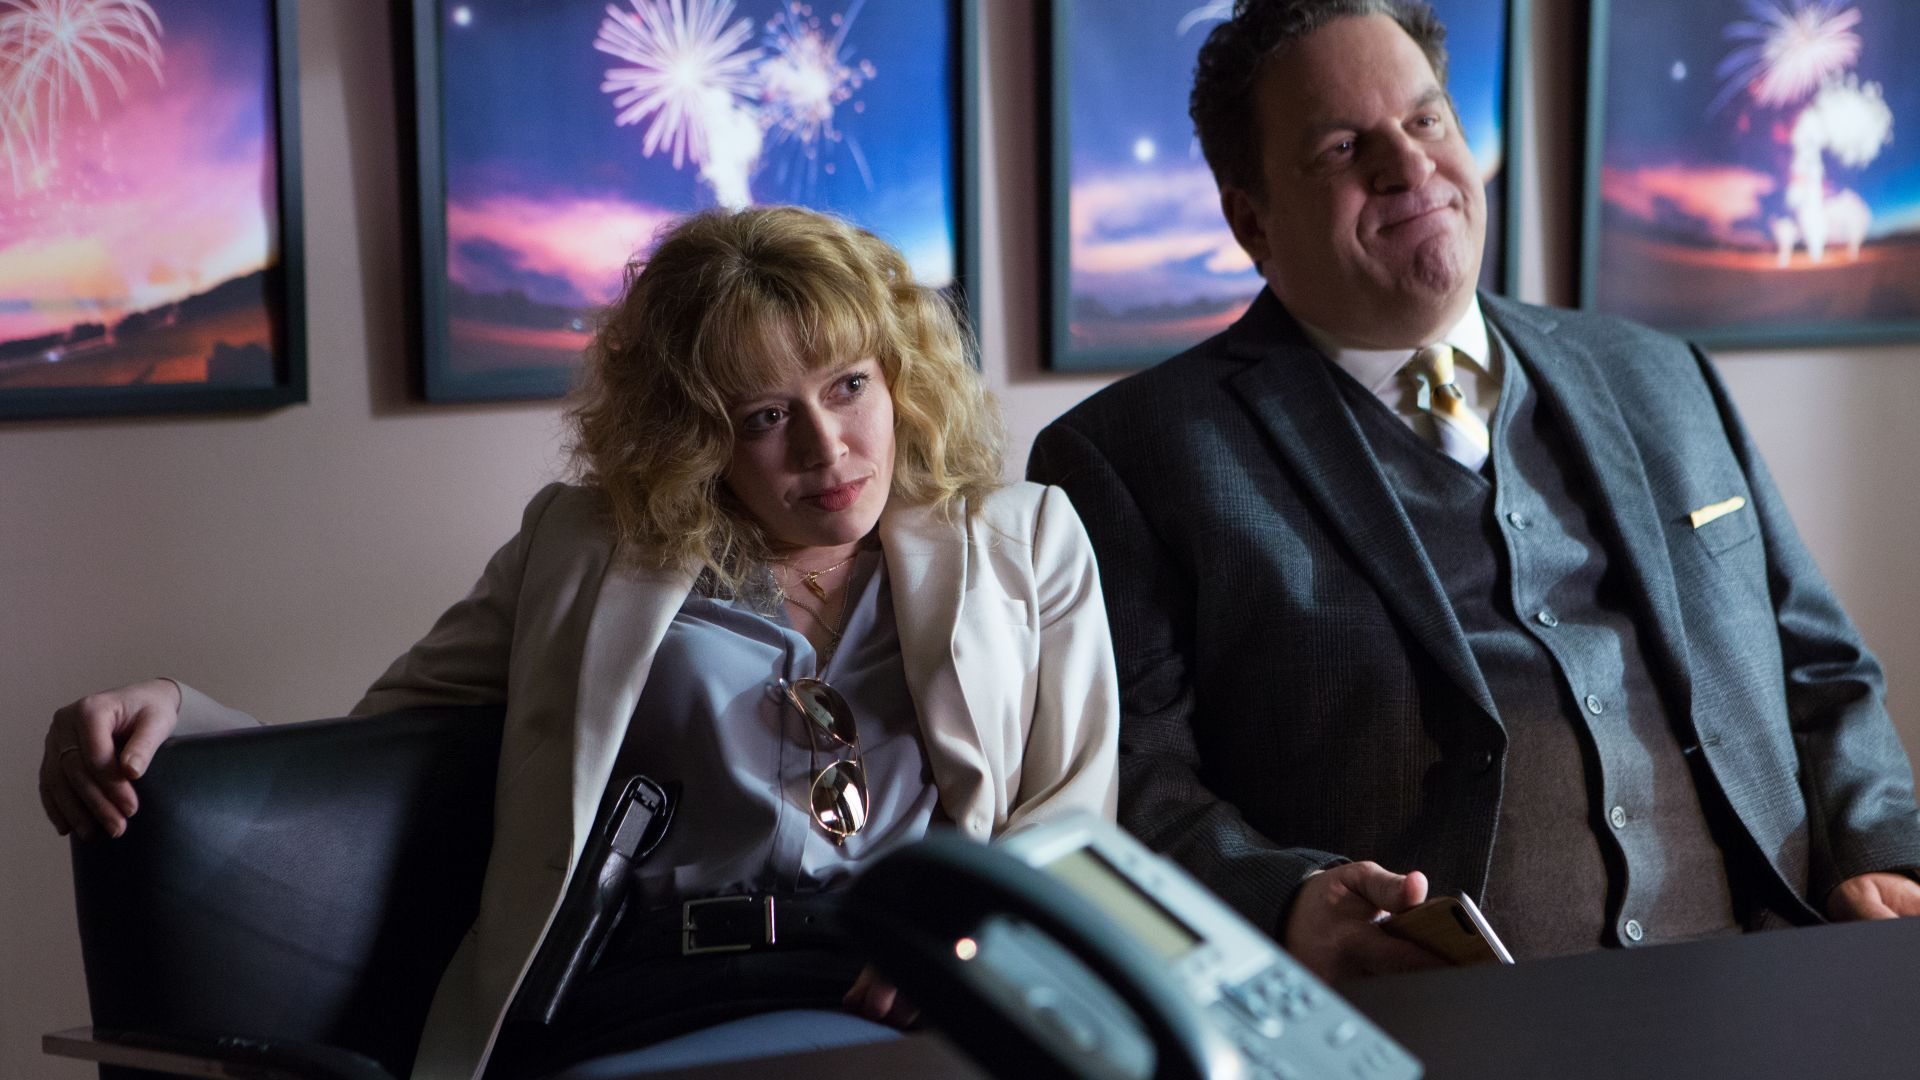 Handsome: A Netflix Mystery Movie, Kaley Cuoco, Jeff Garlin, best comedies (horizontal)